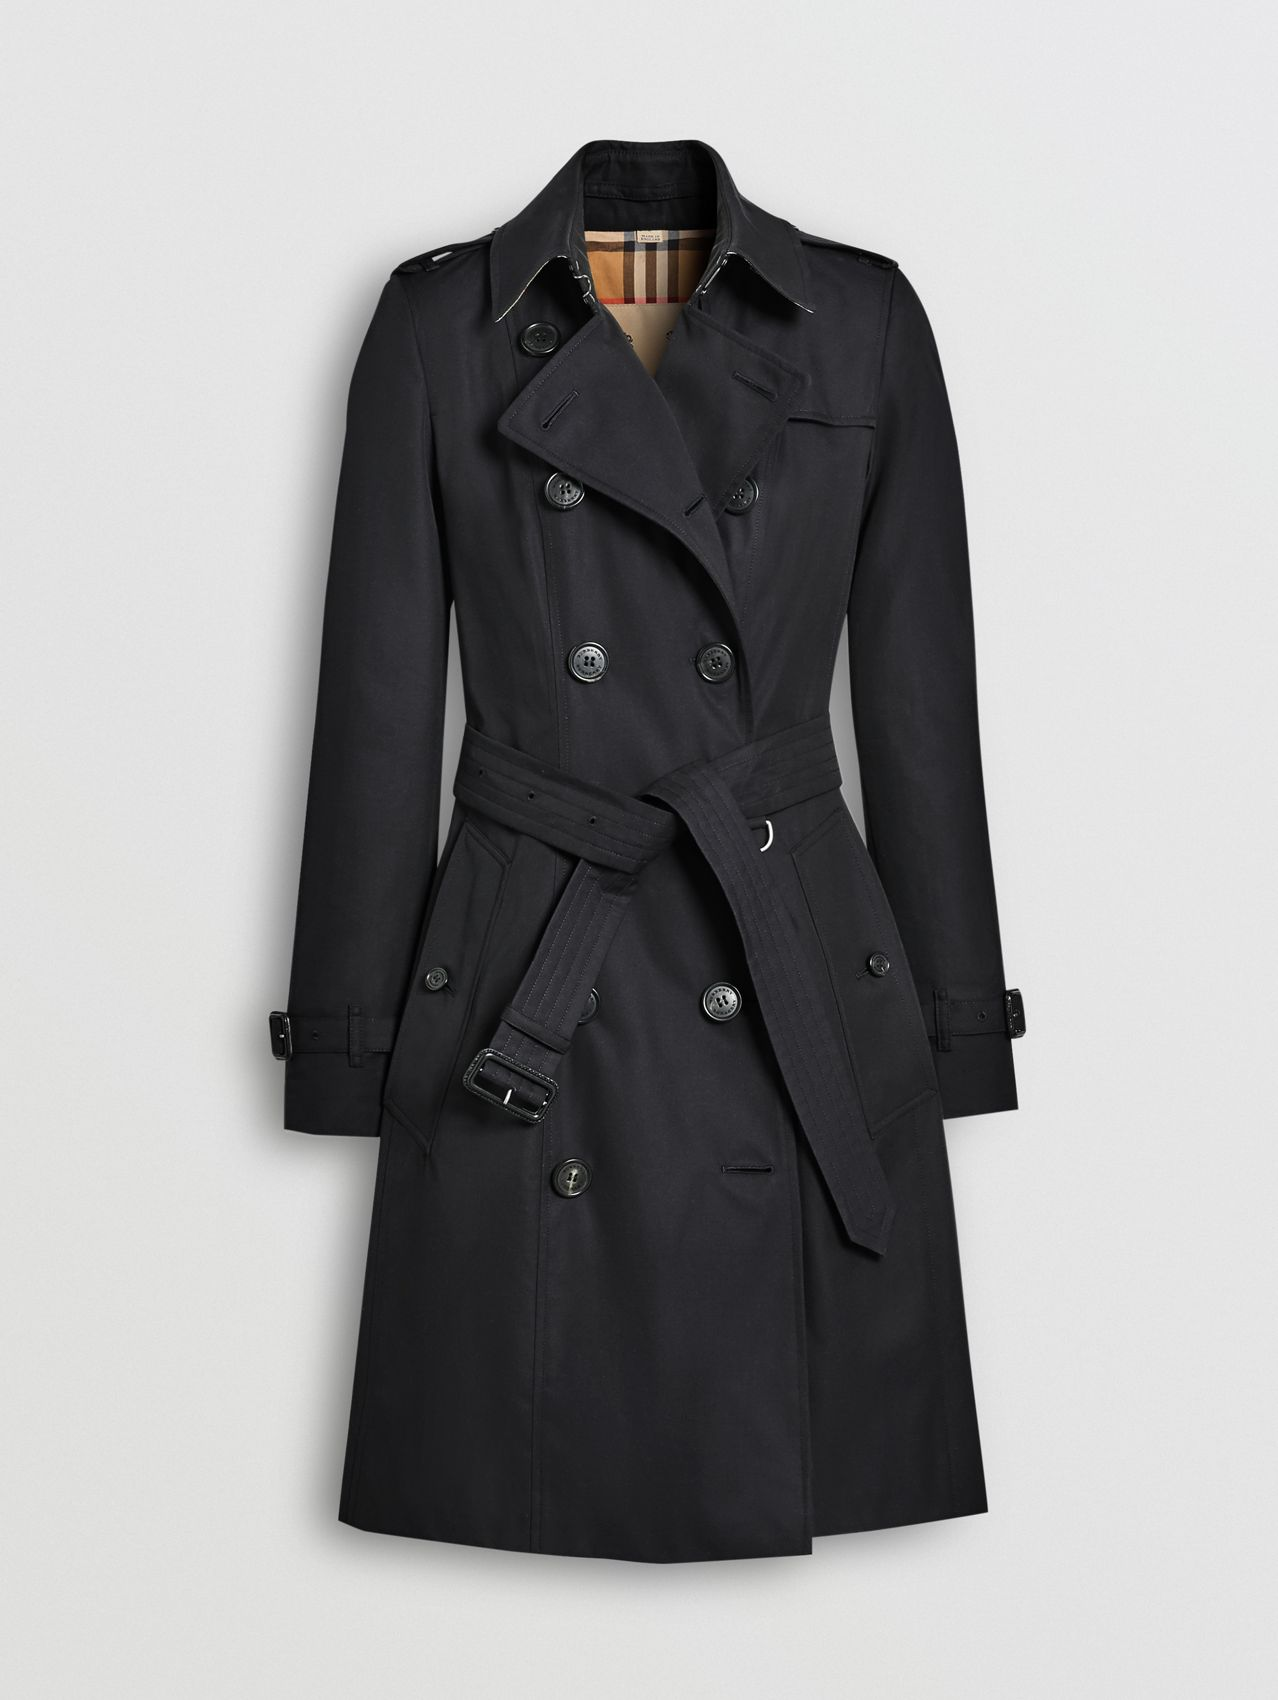 The Mid-length Chelsea Heritage Trench Coat in Midnight